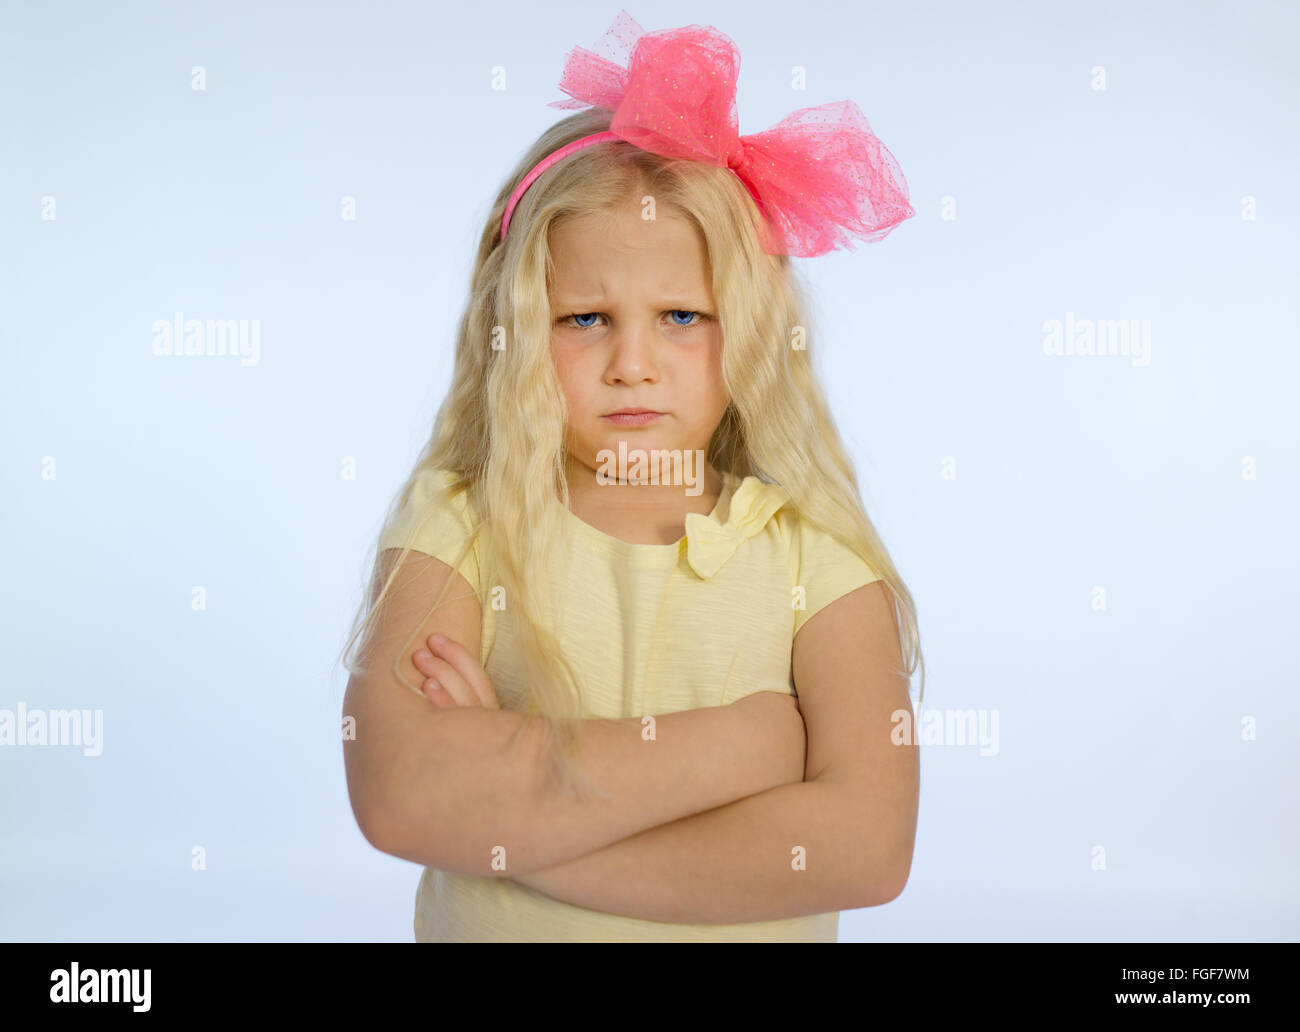 Young girl with long blonde hair and folded arms, frowning with a sad and grumpy expression - Stock Image